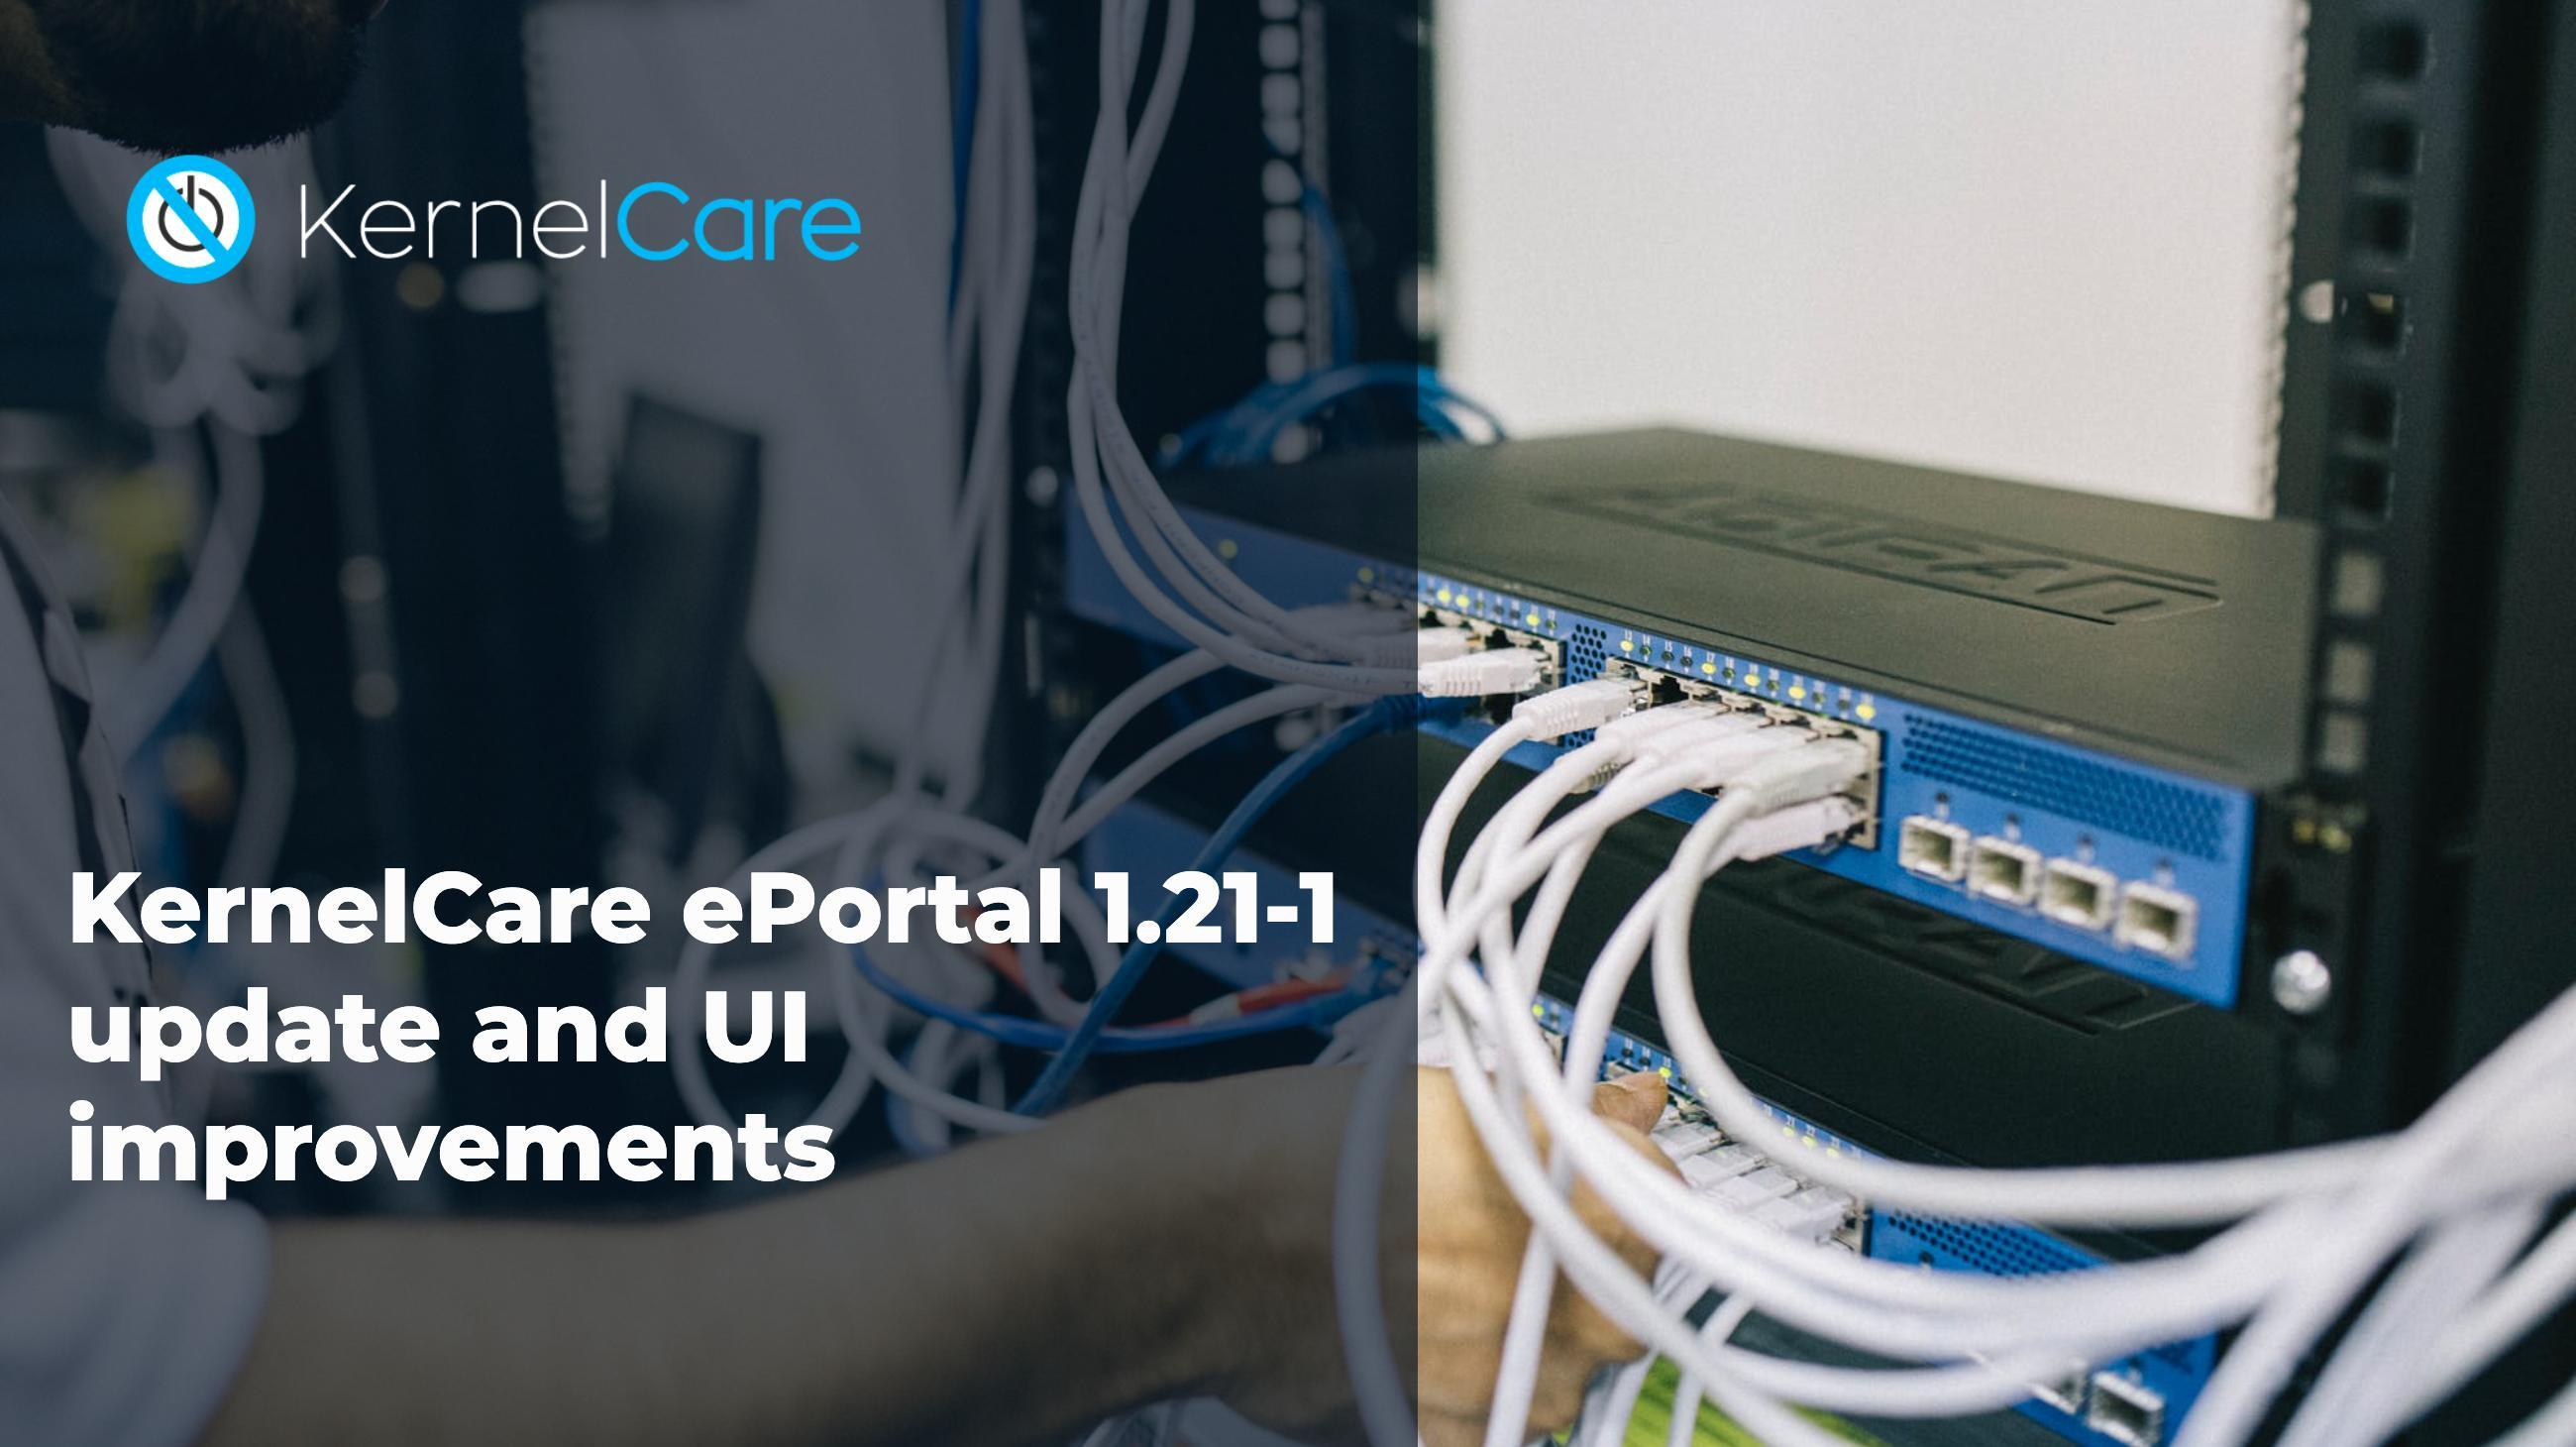 KernelCare ePortal 1.21-1 update and UI improvements